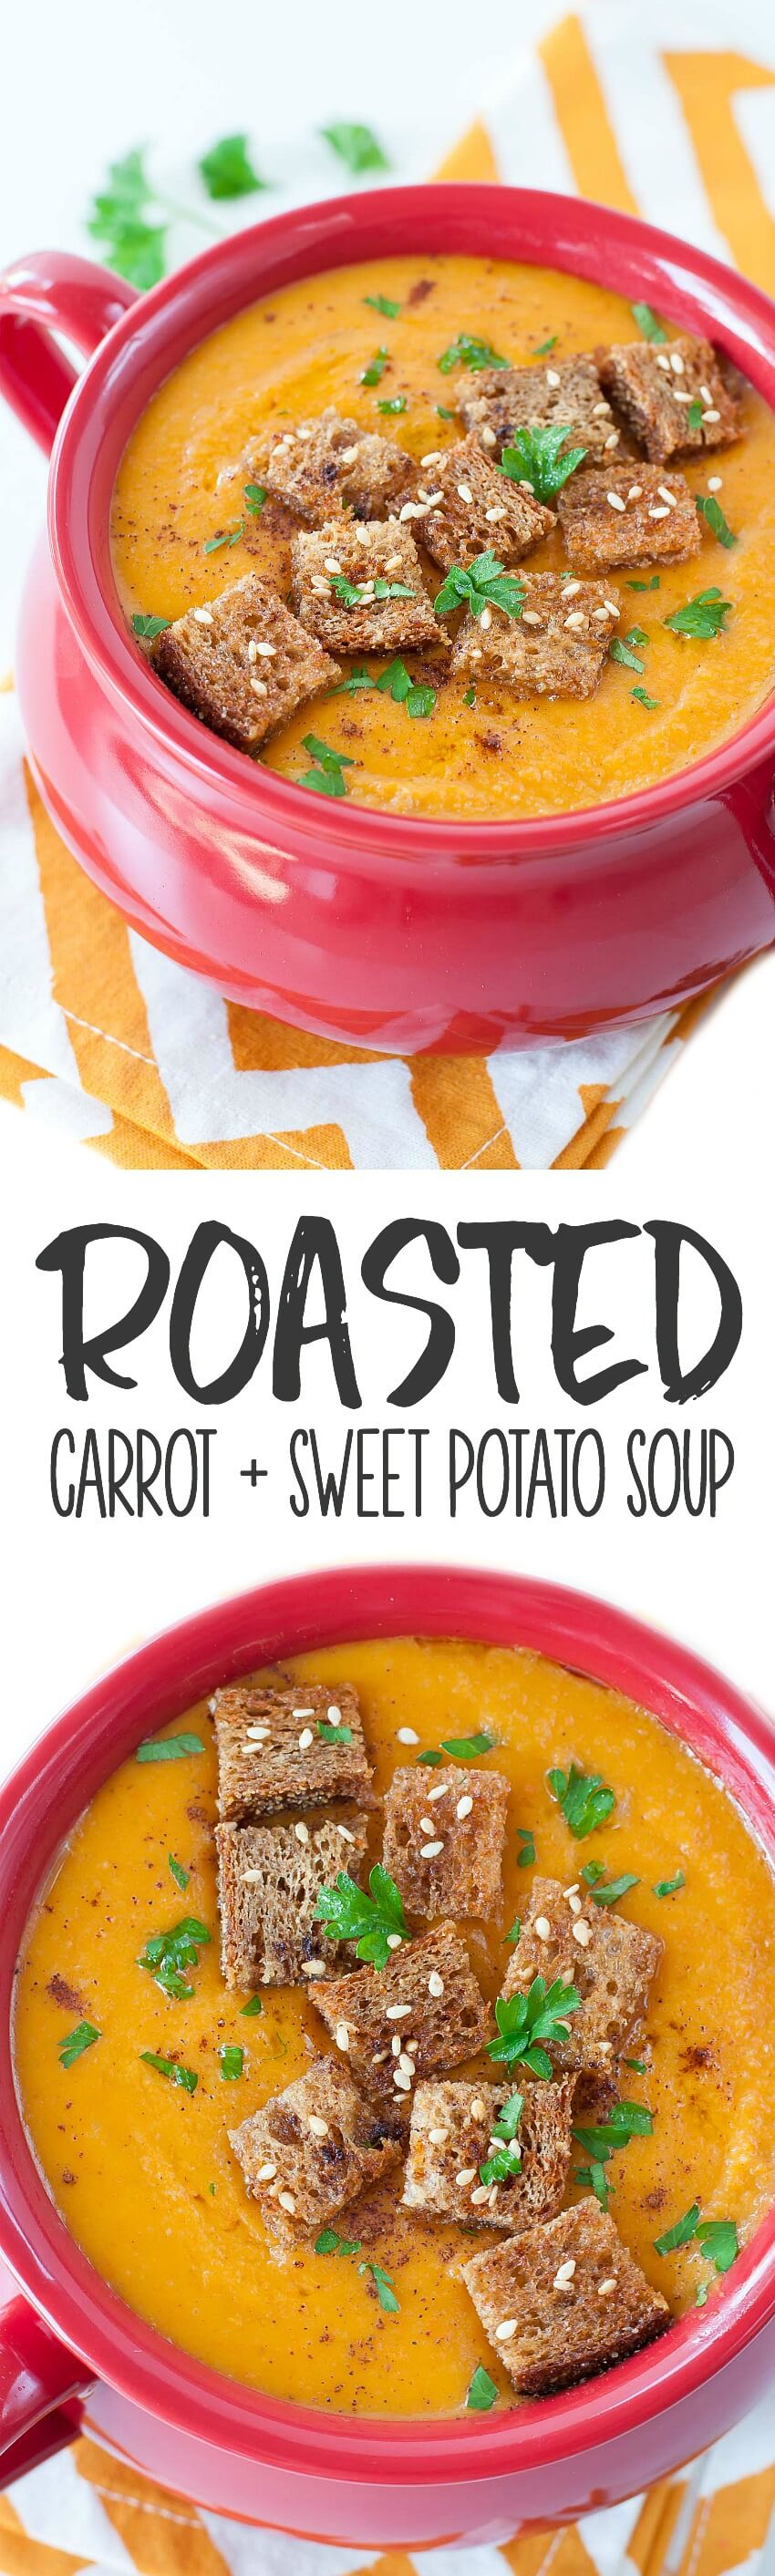 Easy Roasted Carrot and Sweet Potato Soup with Garlic Bread Croutons : this velvety vegetarian soup is full of flavor and so easy to make!